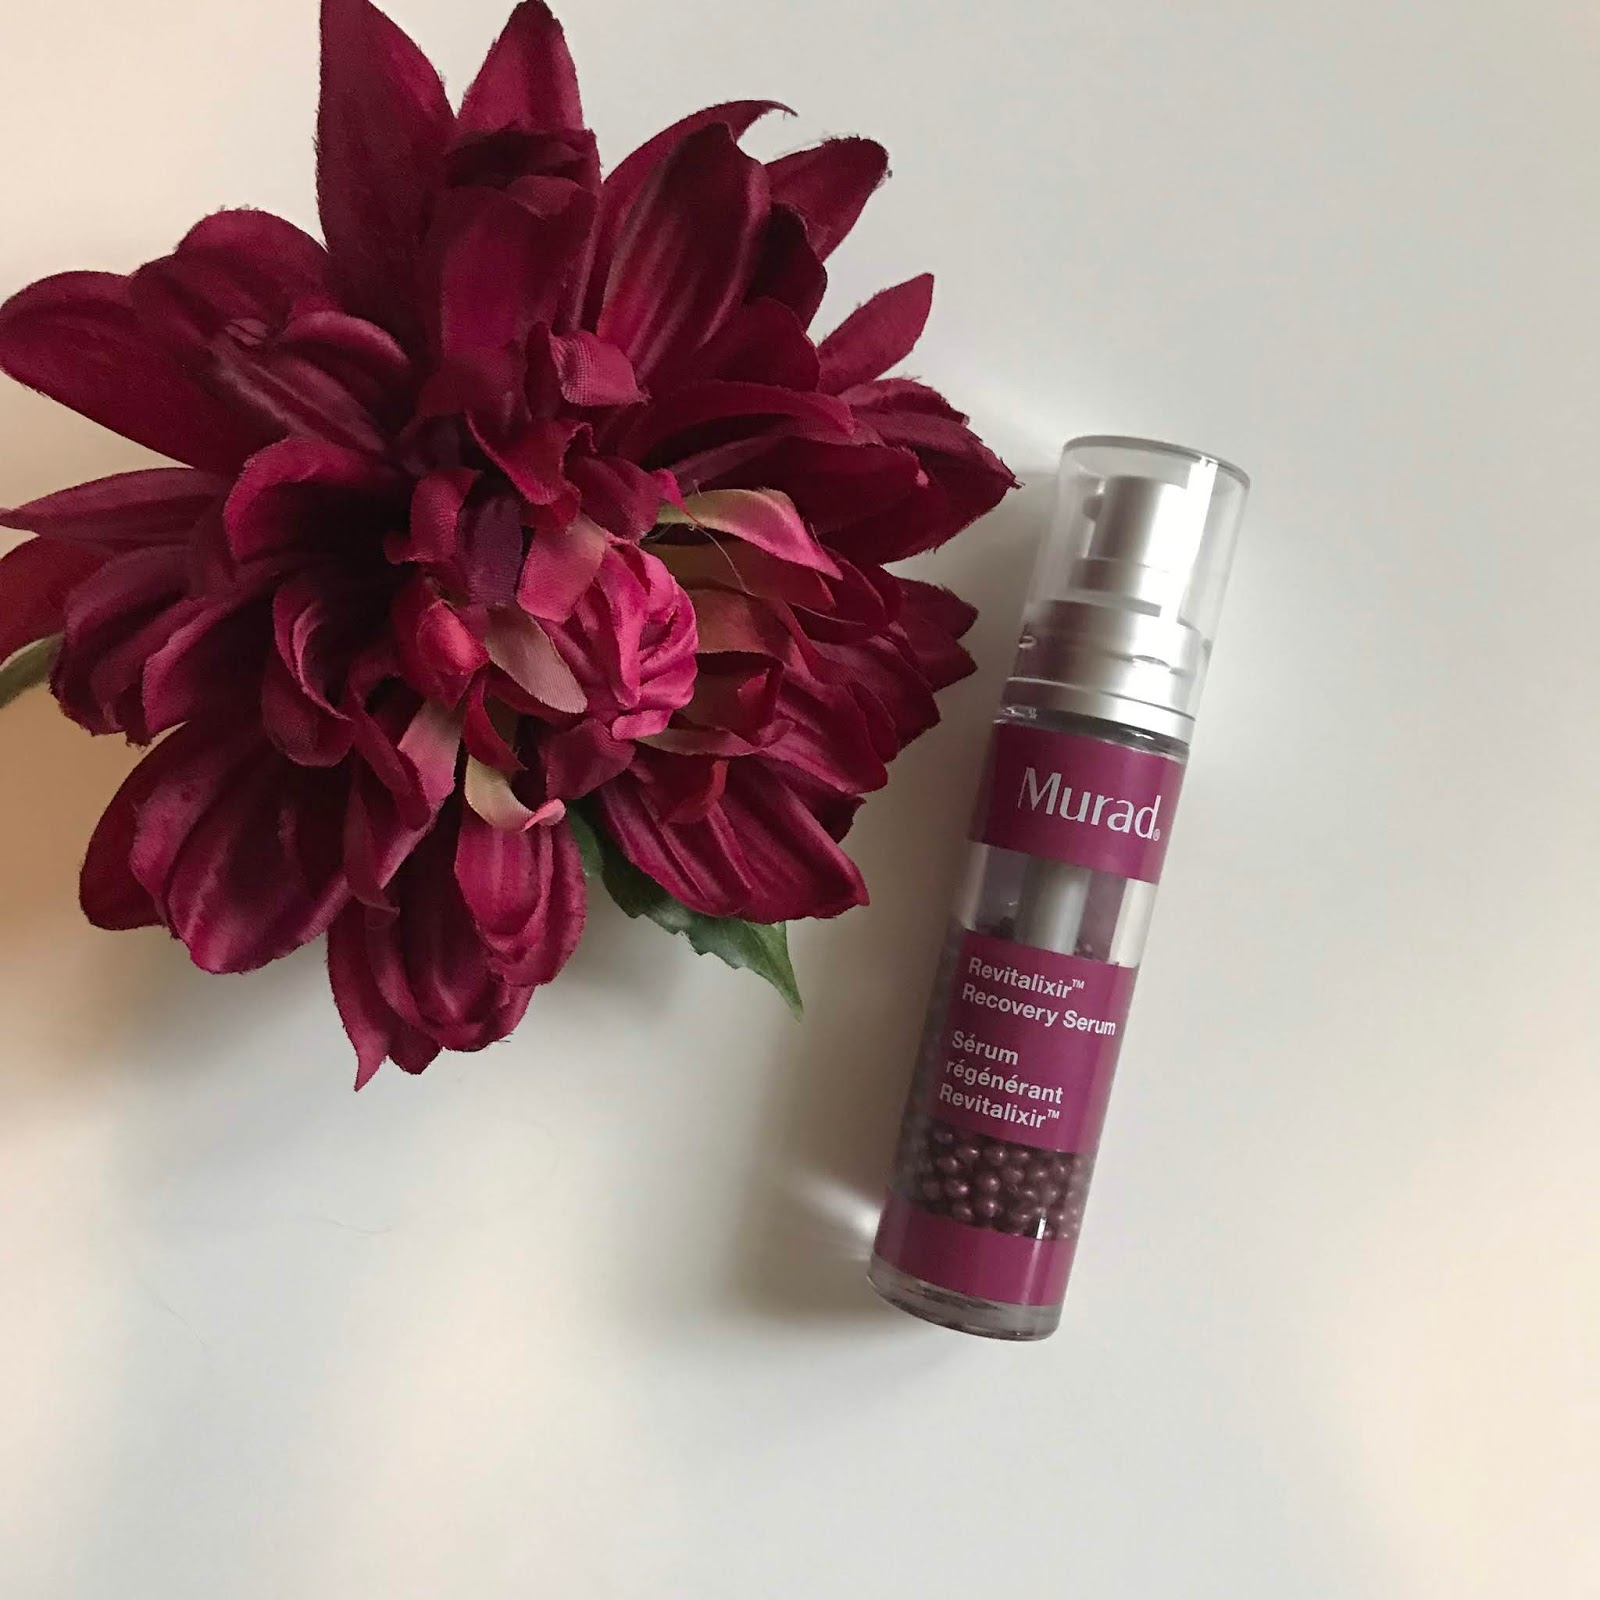 15baef118a2 In the process of trying to find hydrating and soothing products, I scored  big time with Murad's Revitalixir Recovery Serum and use it every single  day.